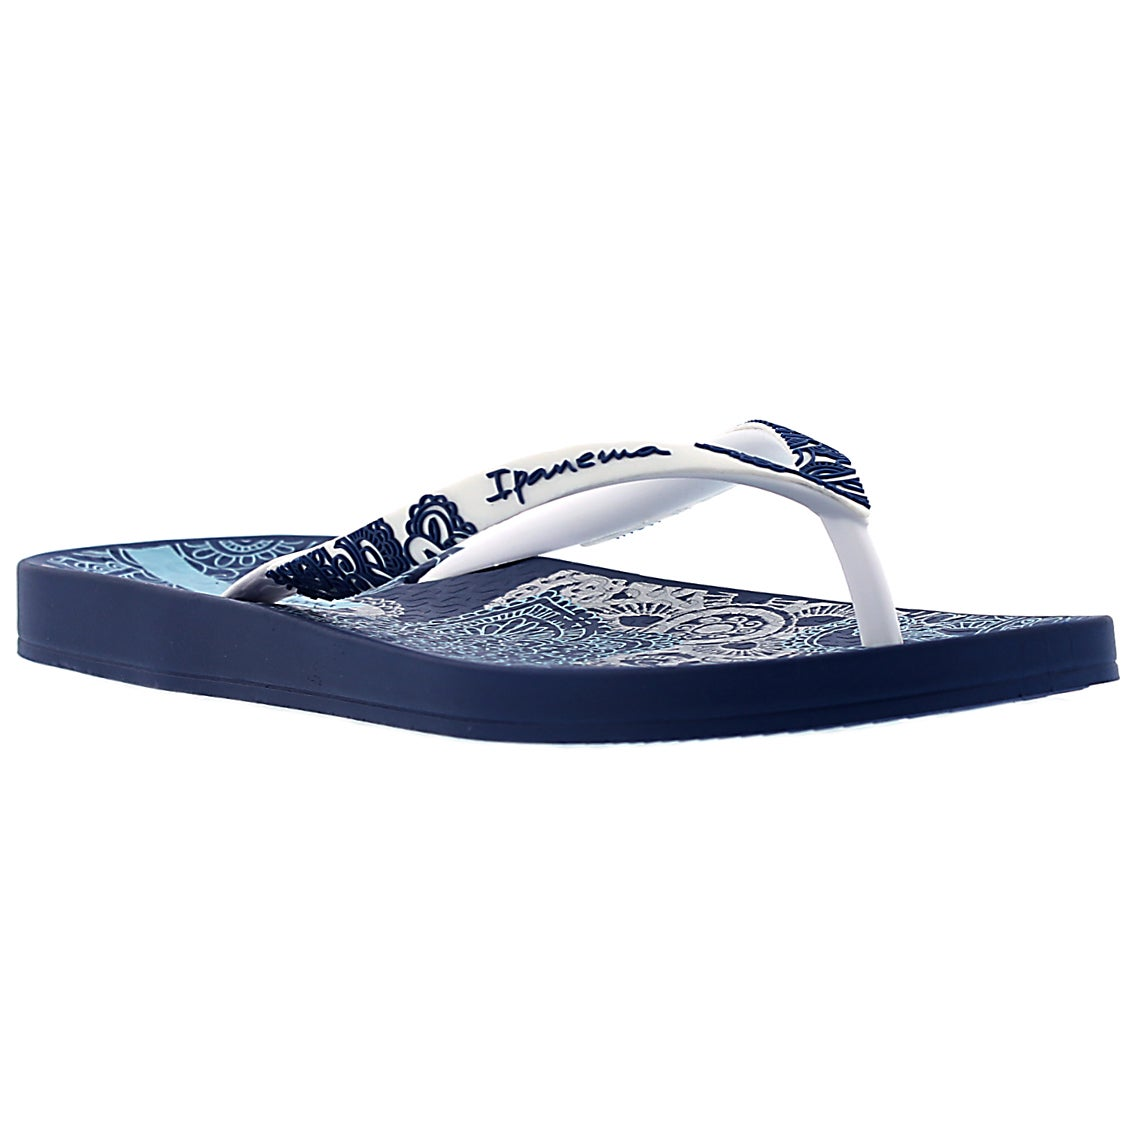 Women's LACE blue/white printed flip flops